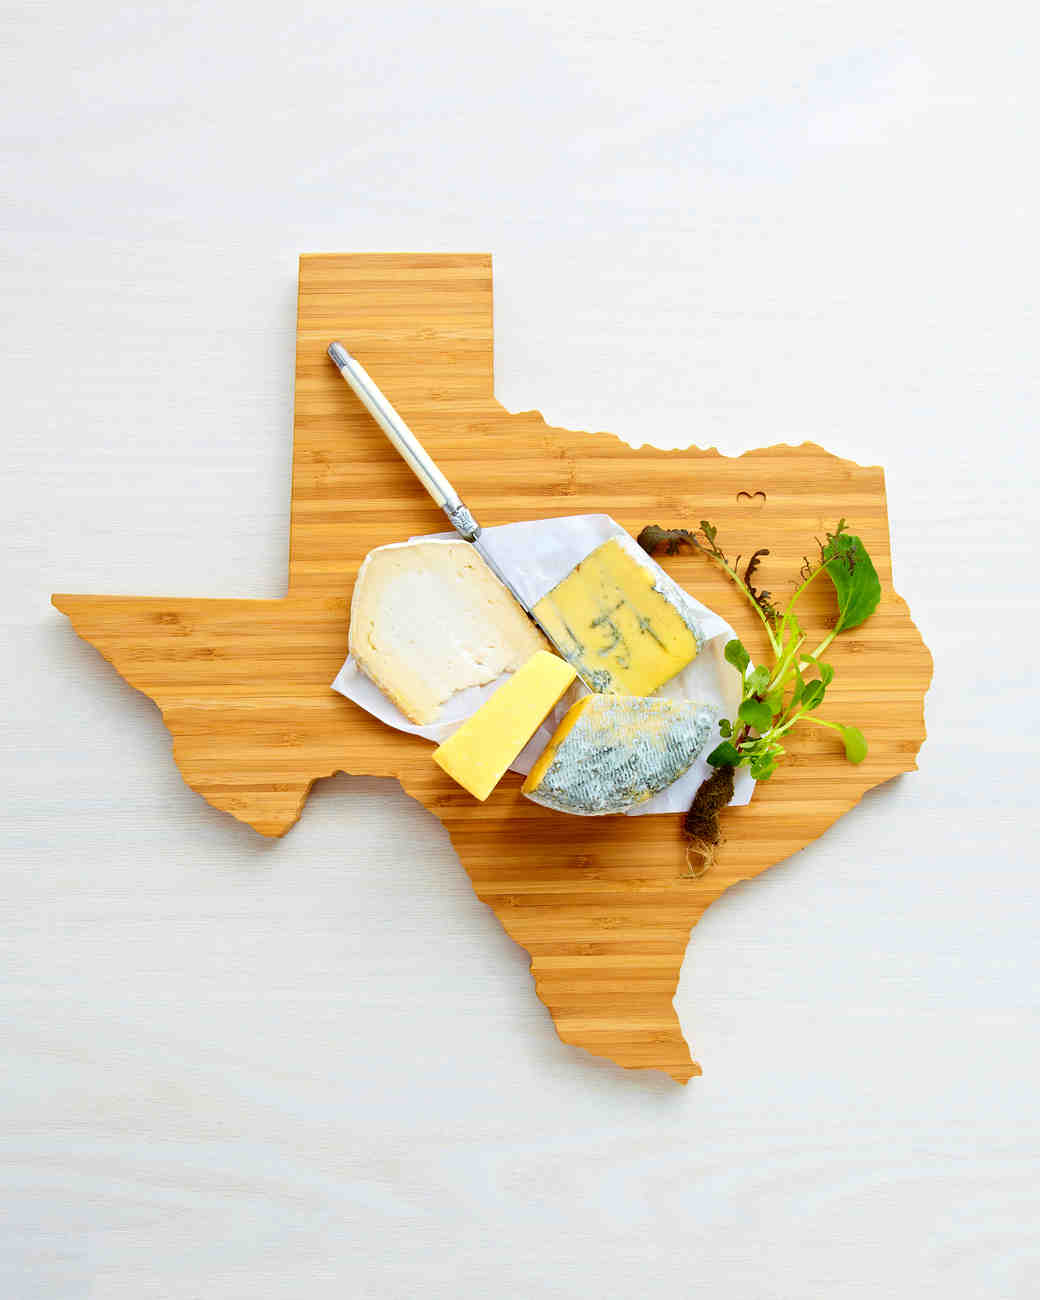 mother-bride-groom-gift-aheirloom-cutting-board-0415.jpg